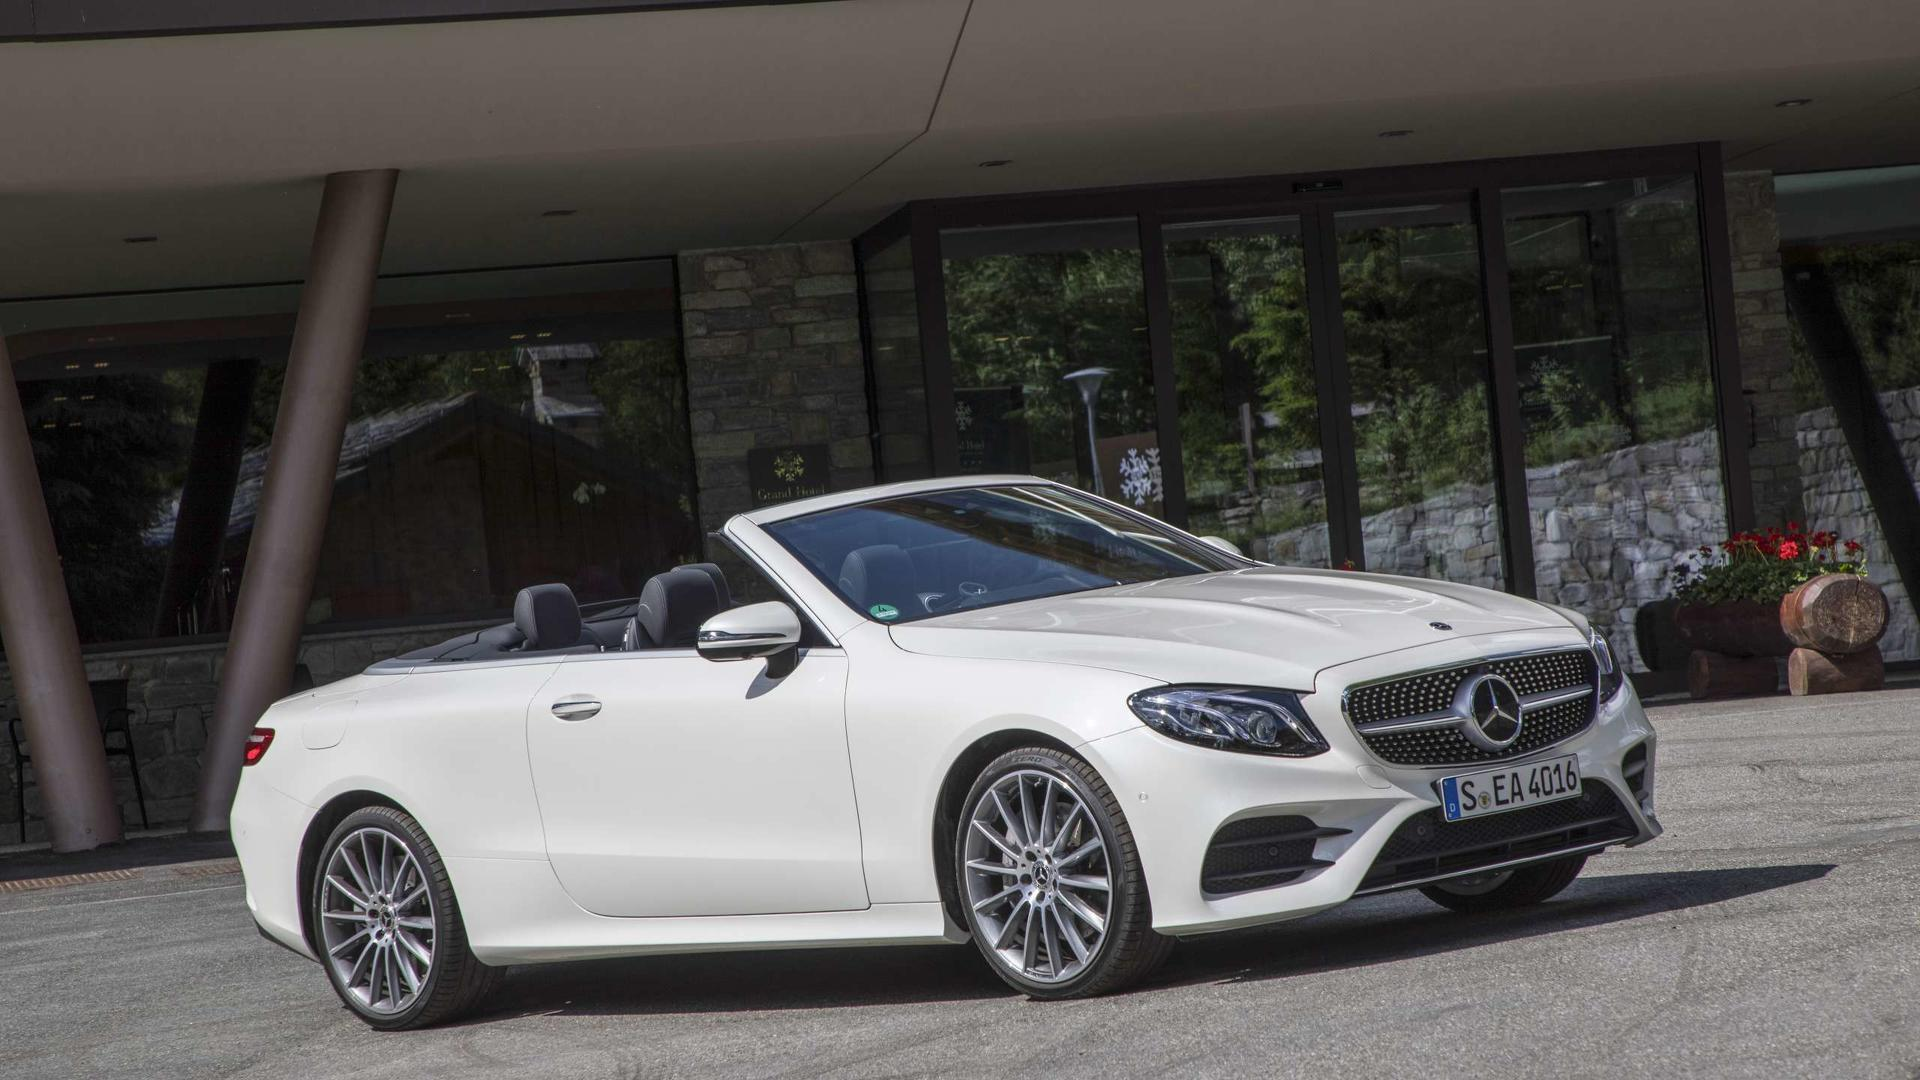 news convertible c mercedes s review quarter en class cabriolet first motion amg three drive front benz in